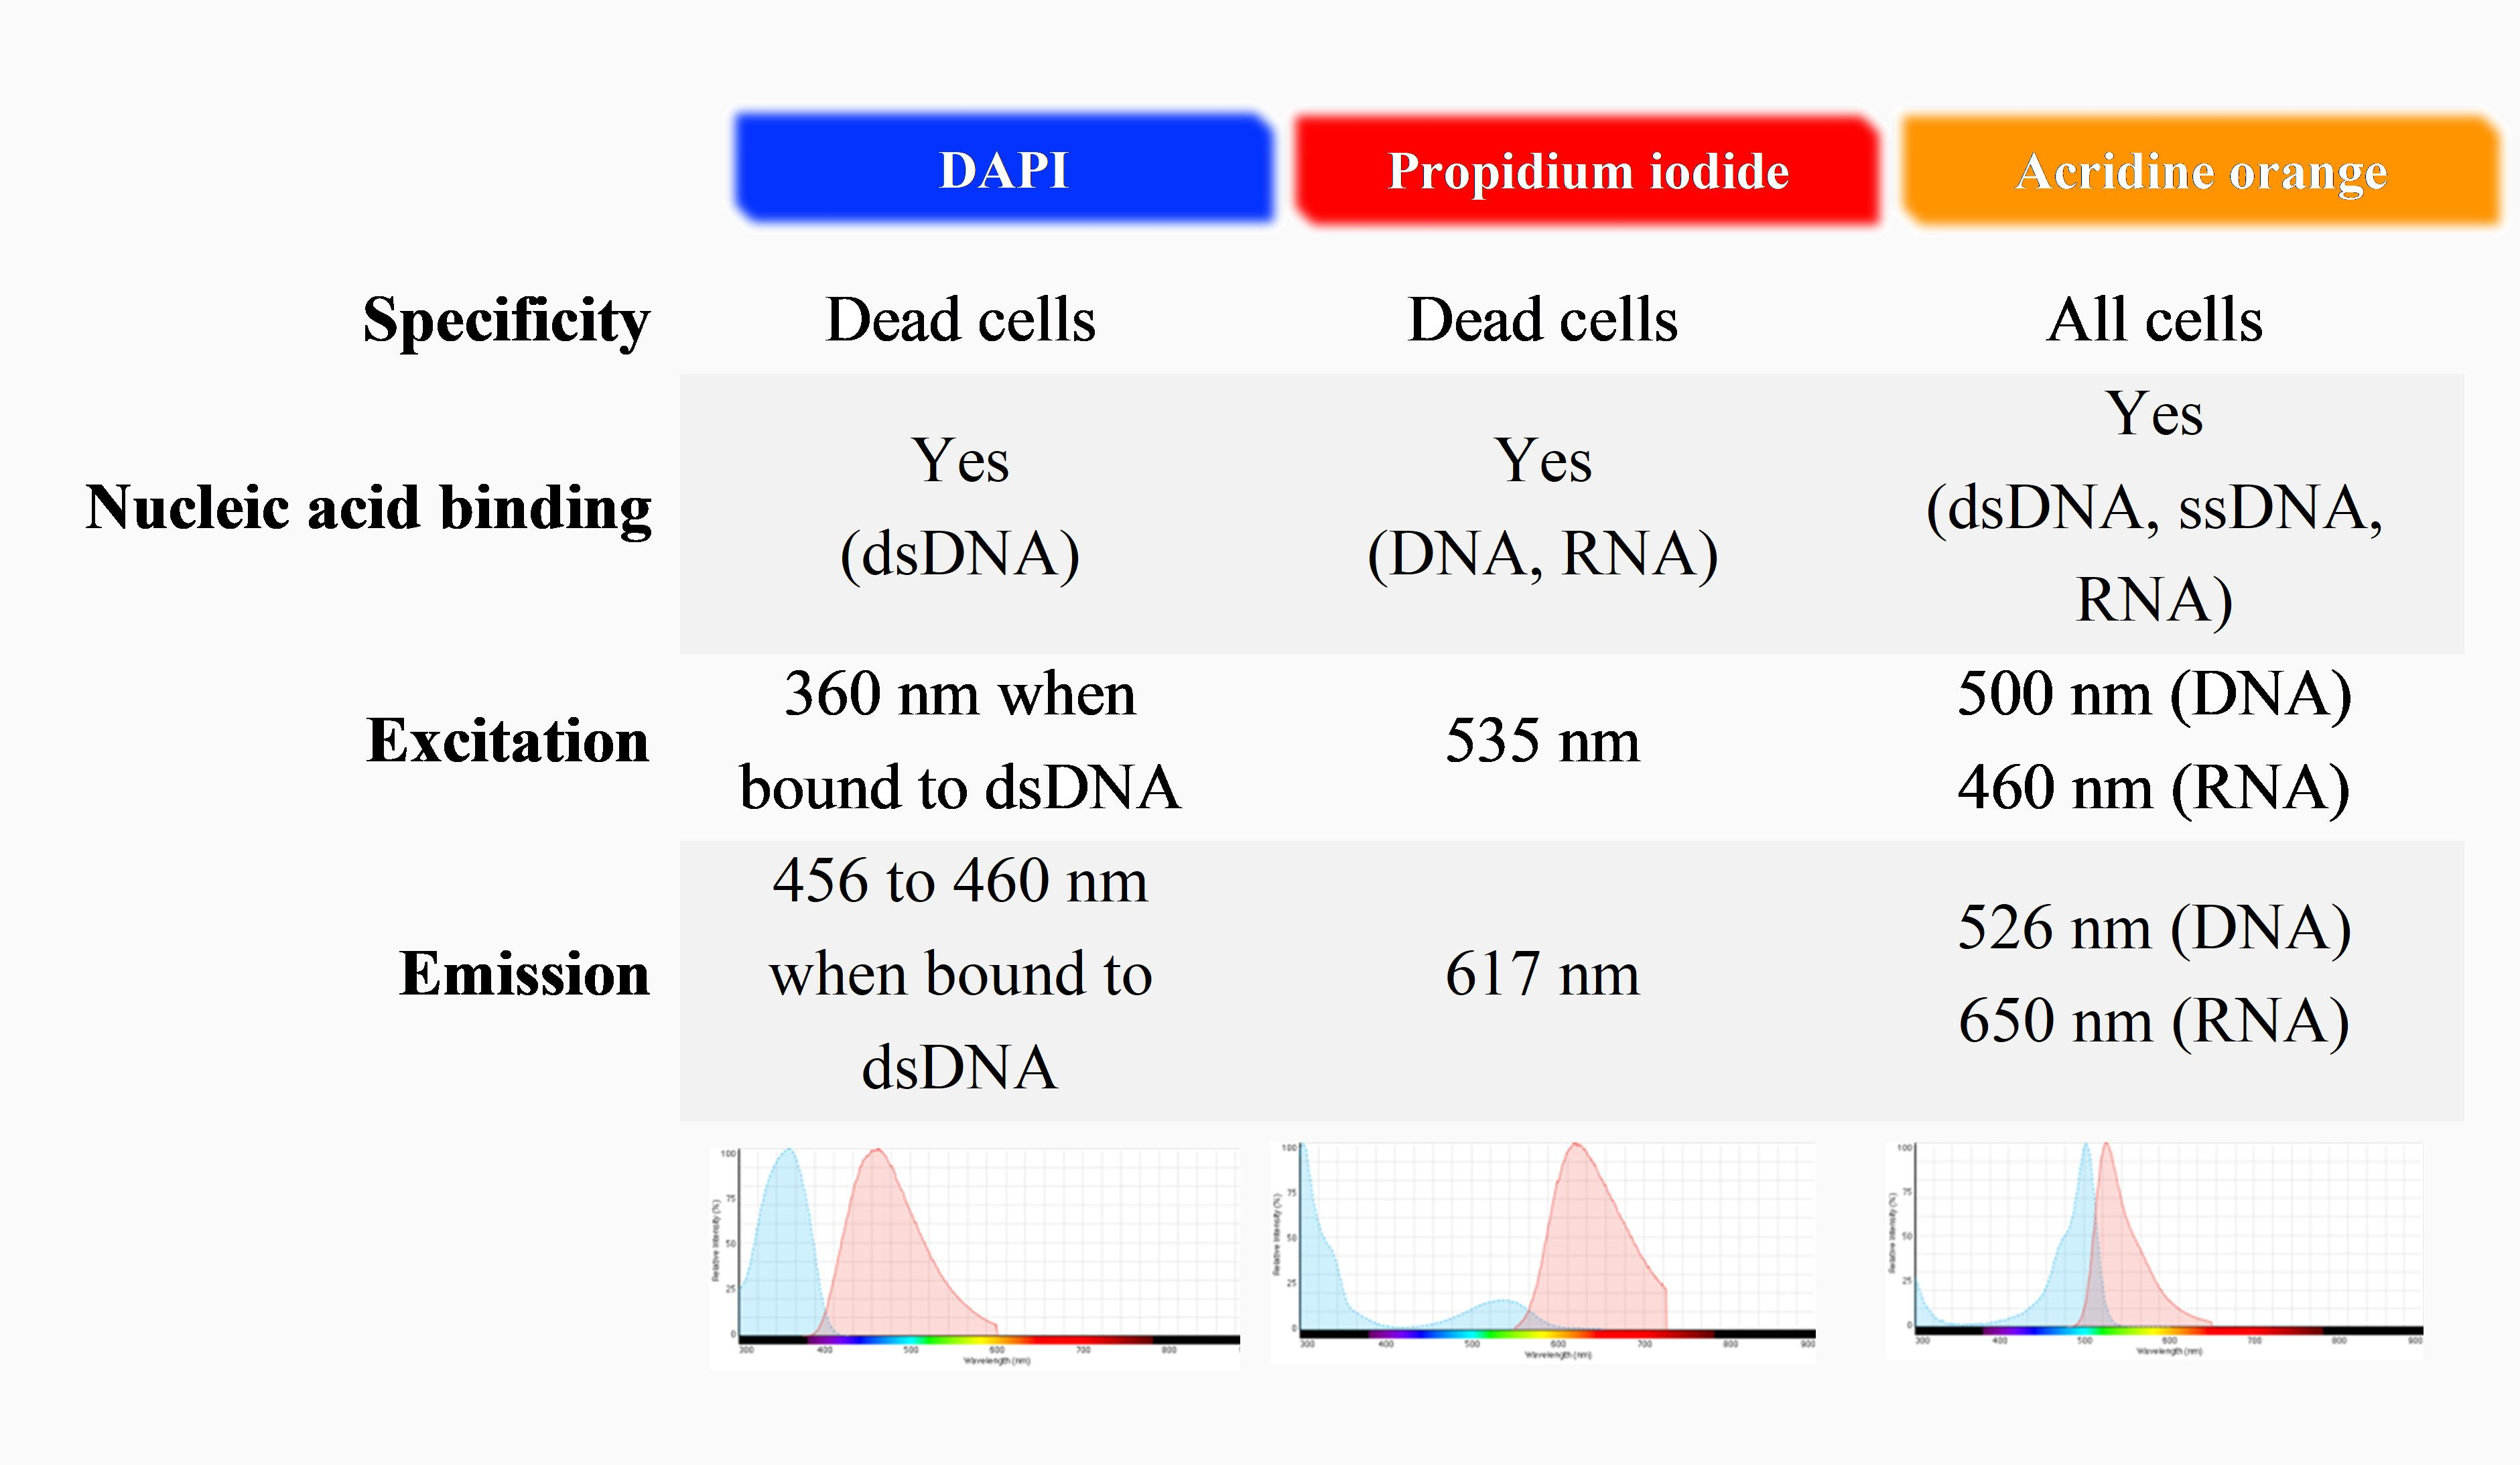 Characteristics of common fluorescence staining used for live/dead and total cell number counting